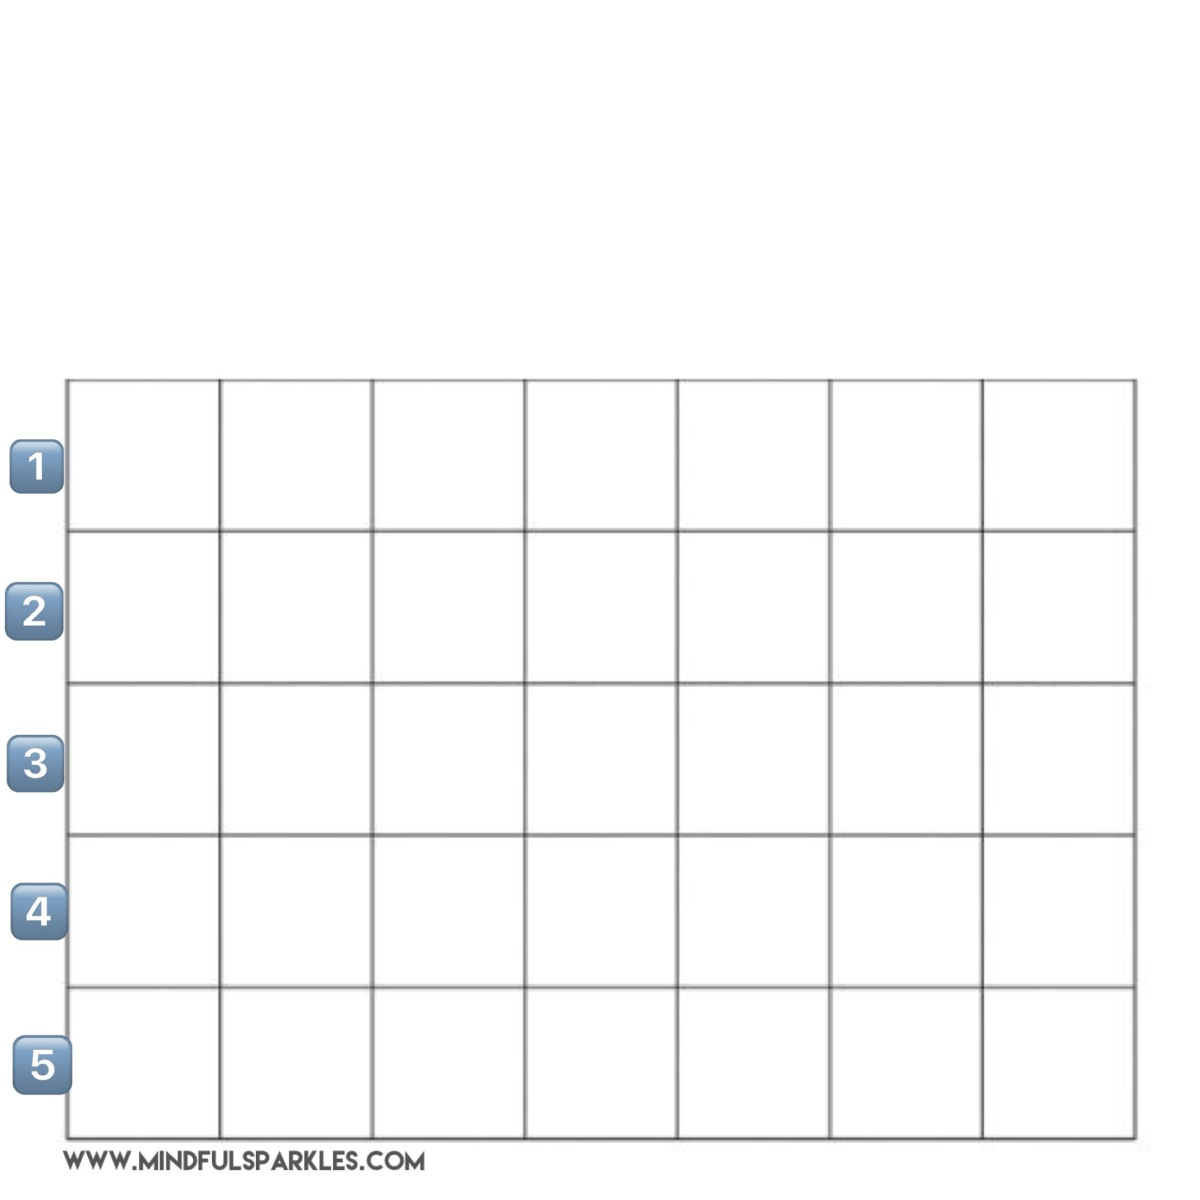 Blank Grid Numbered 1-5